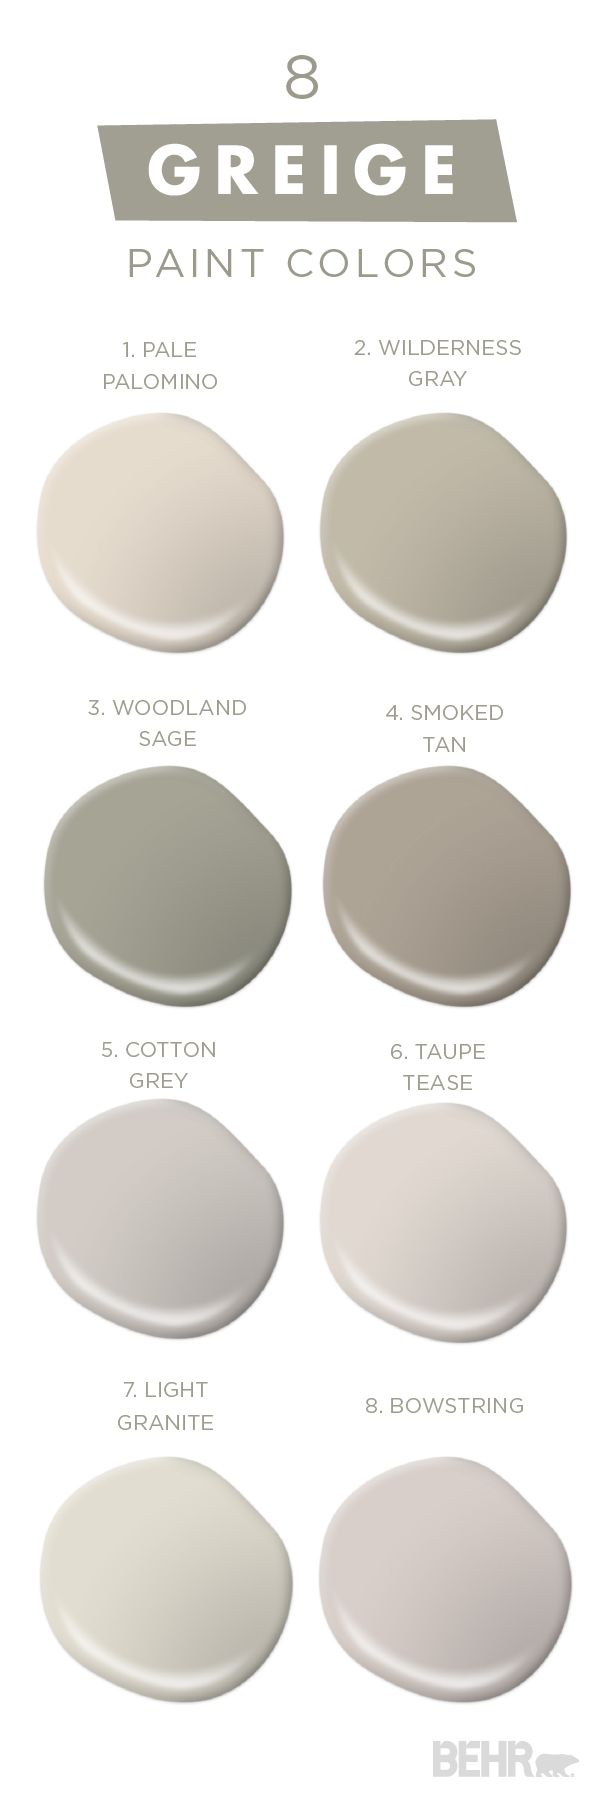 17 best images about grey greige color trend on pinterest for Shades of neutral colors